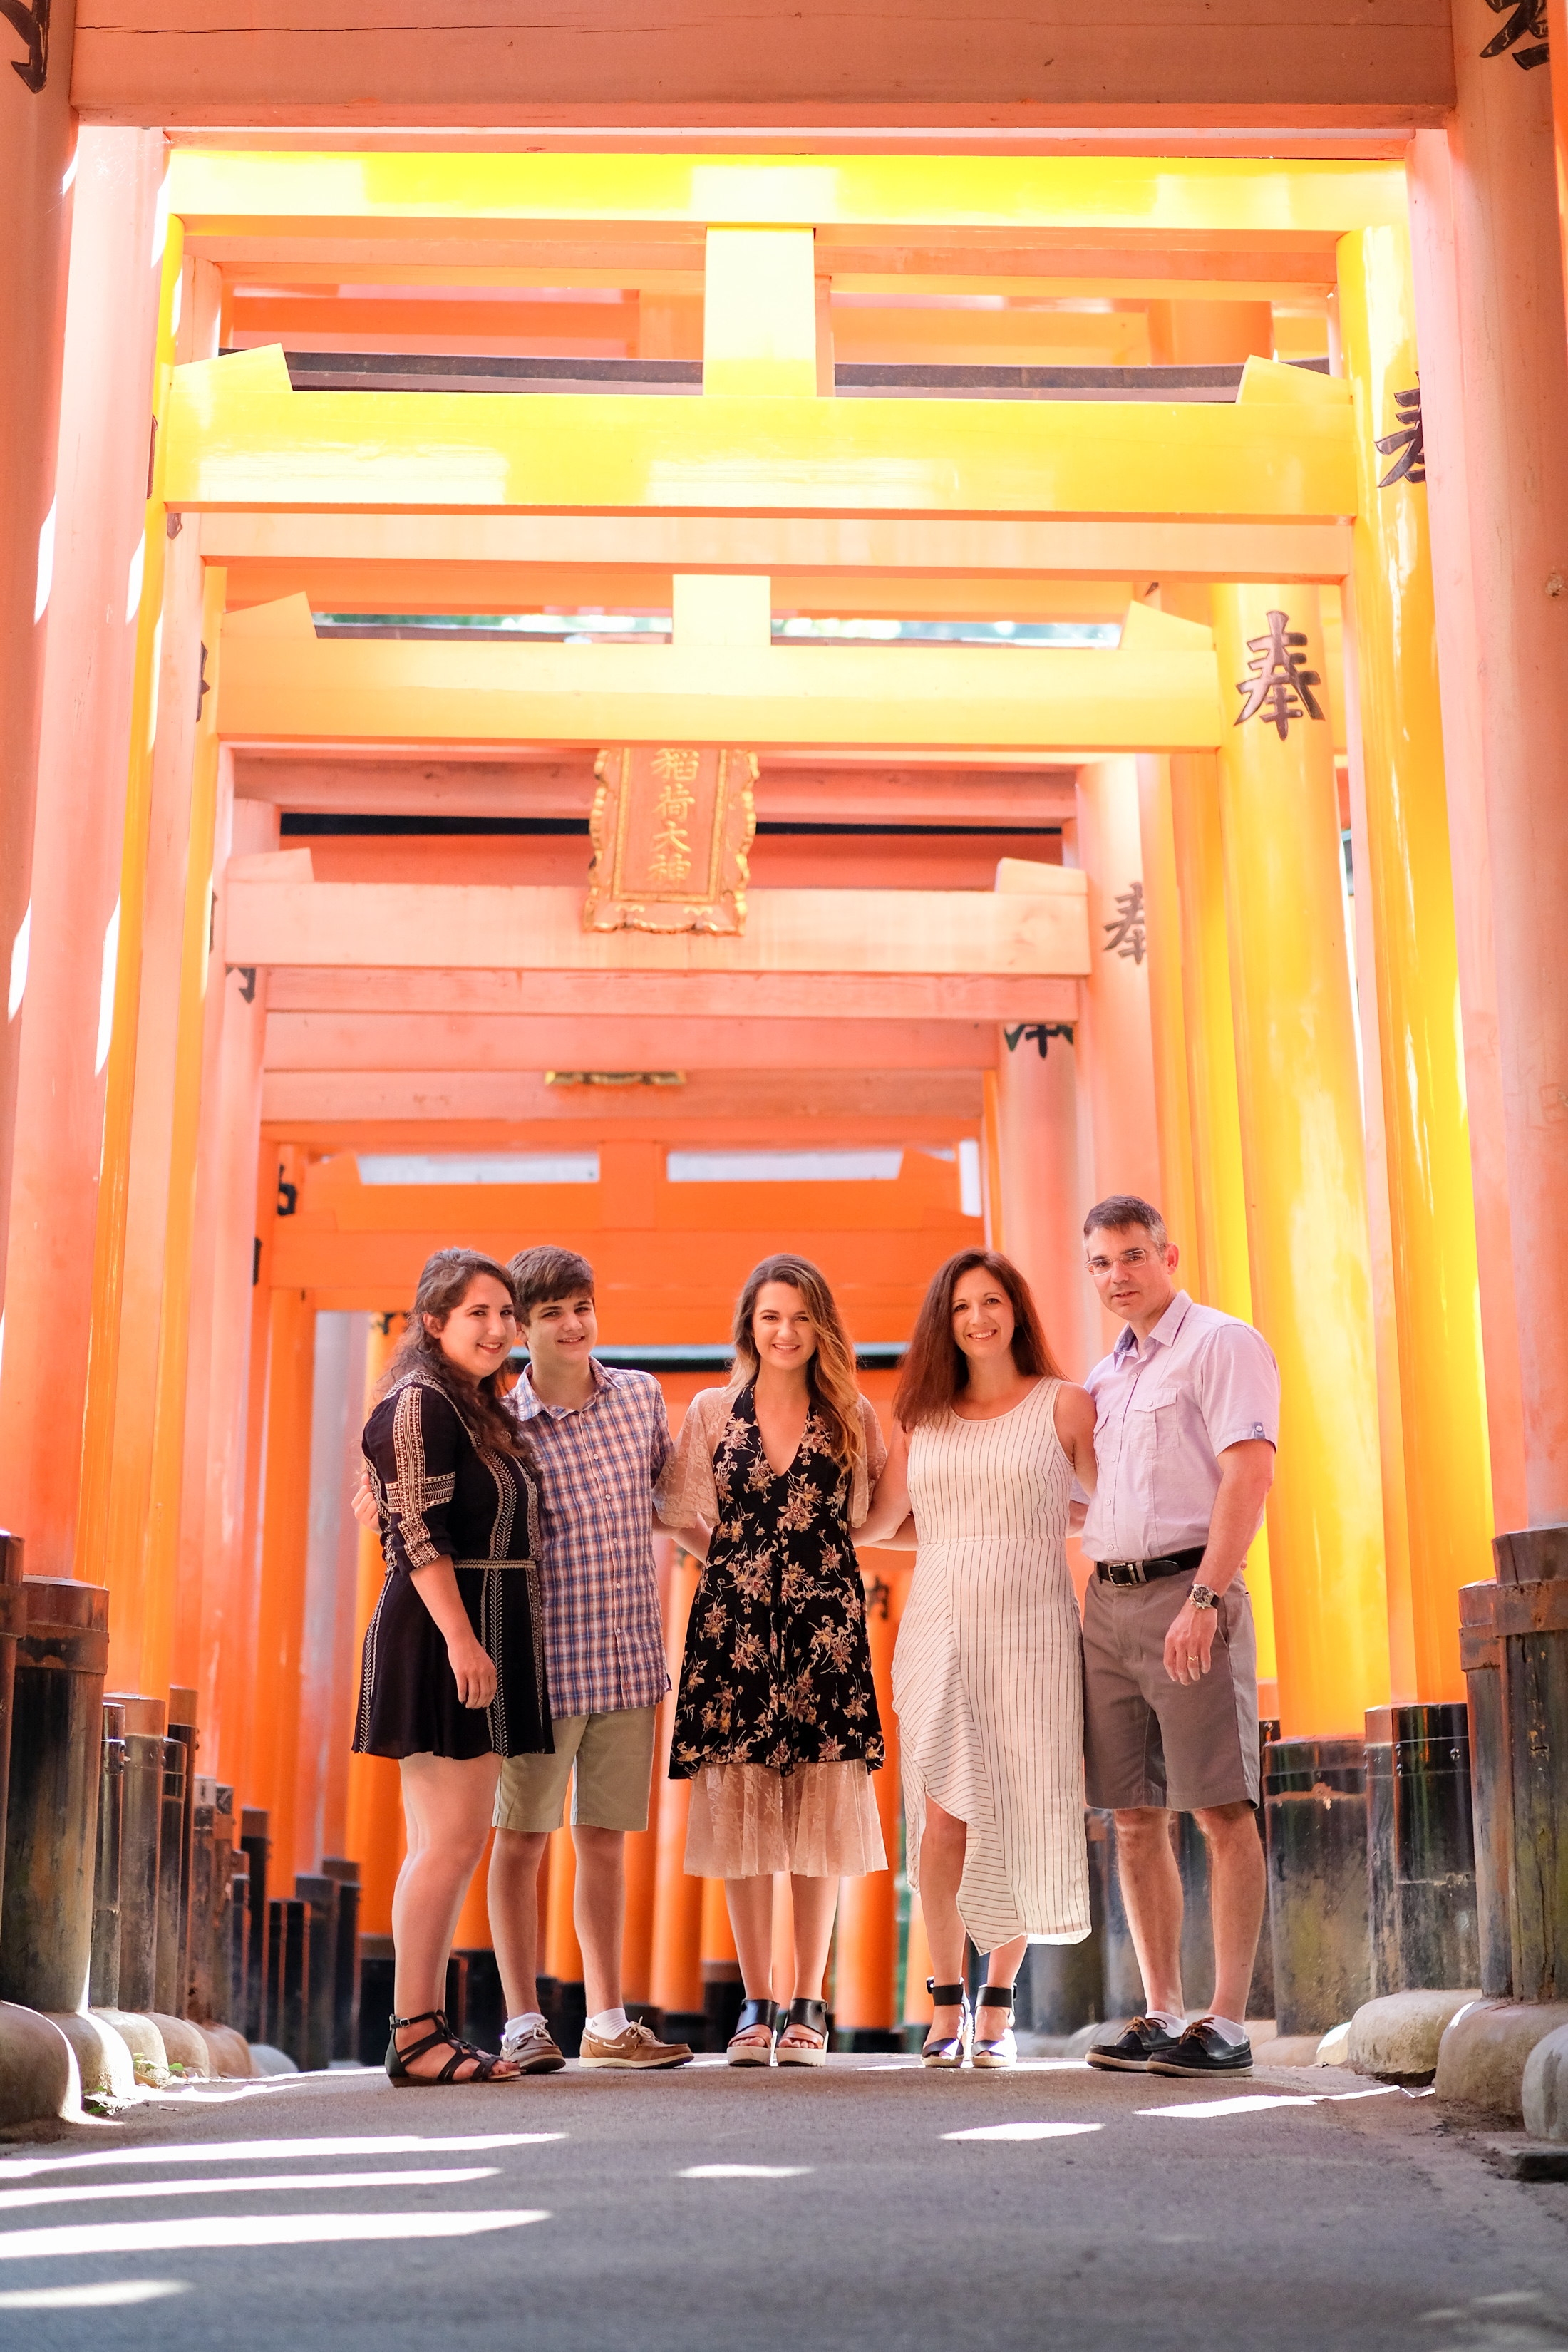 Family_photoshoot_freelance_photographer_in_Kyoto